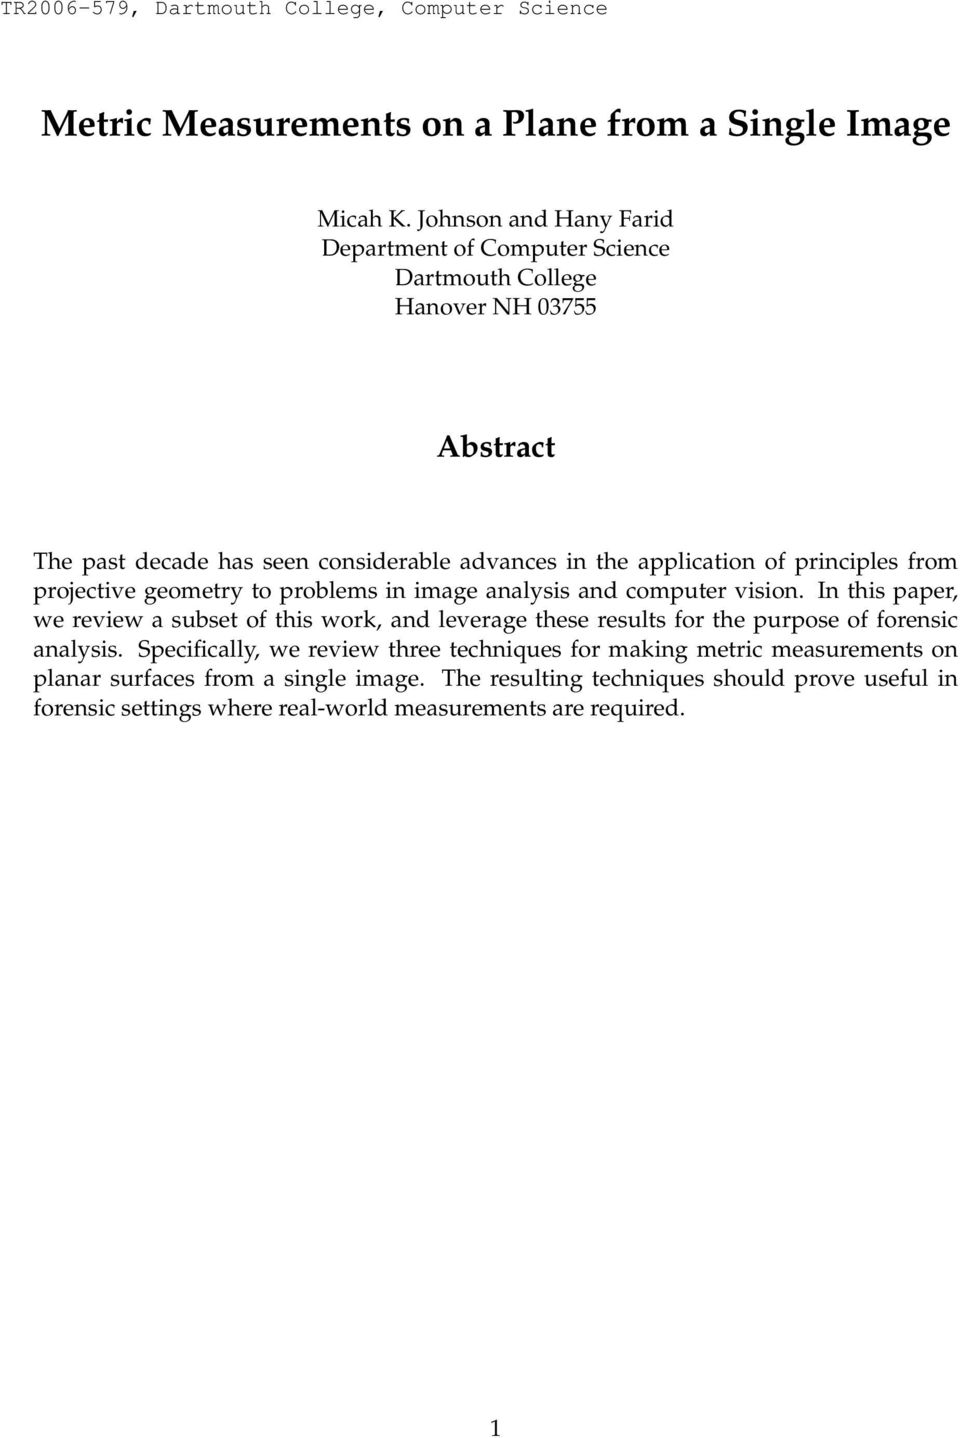 principles from projective geometry to problems in image analysis and computer vision.